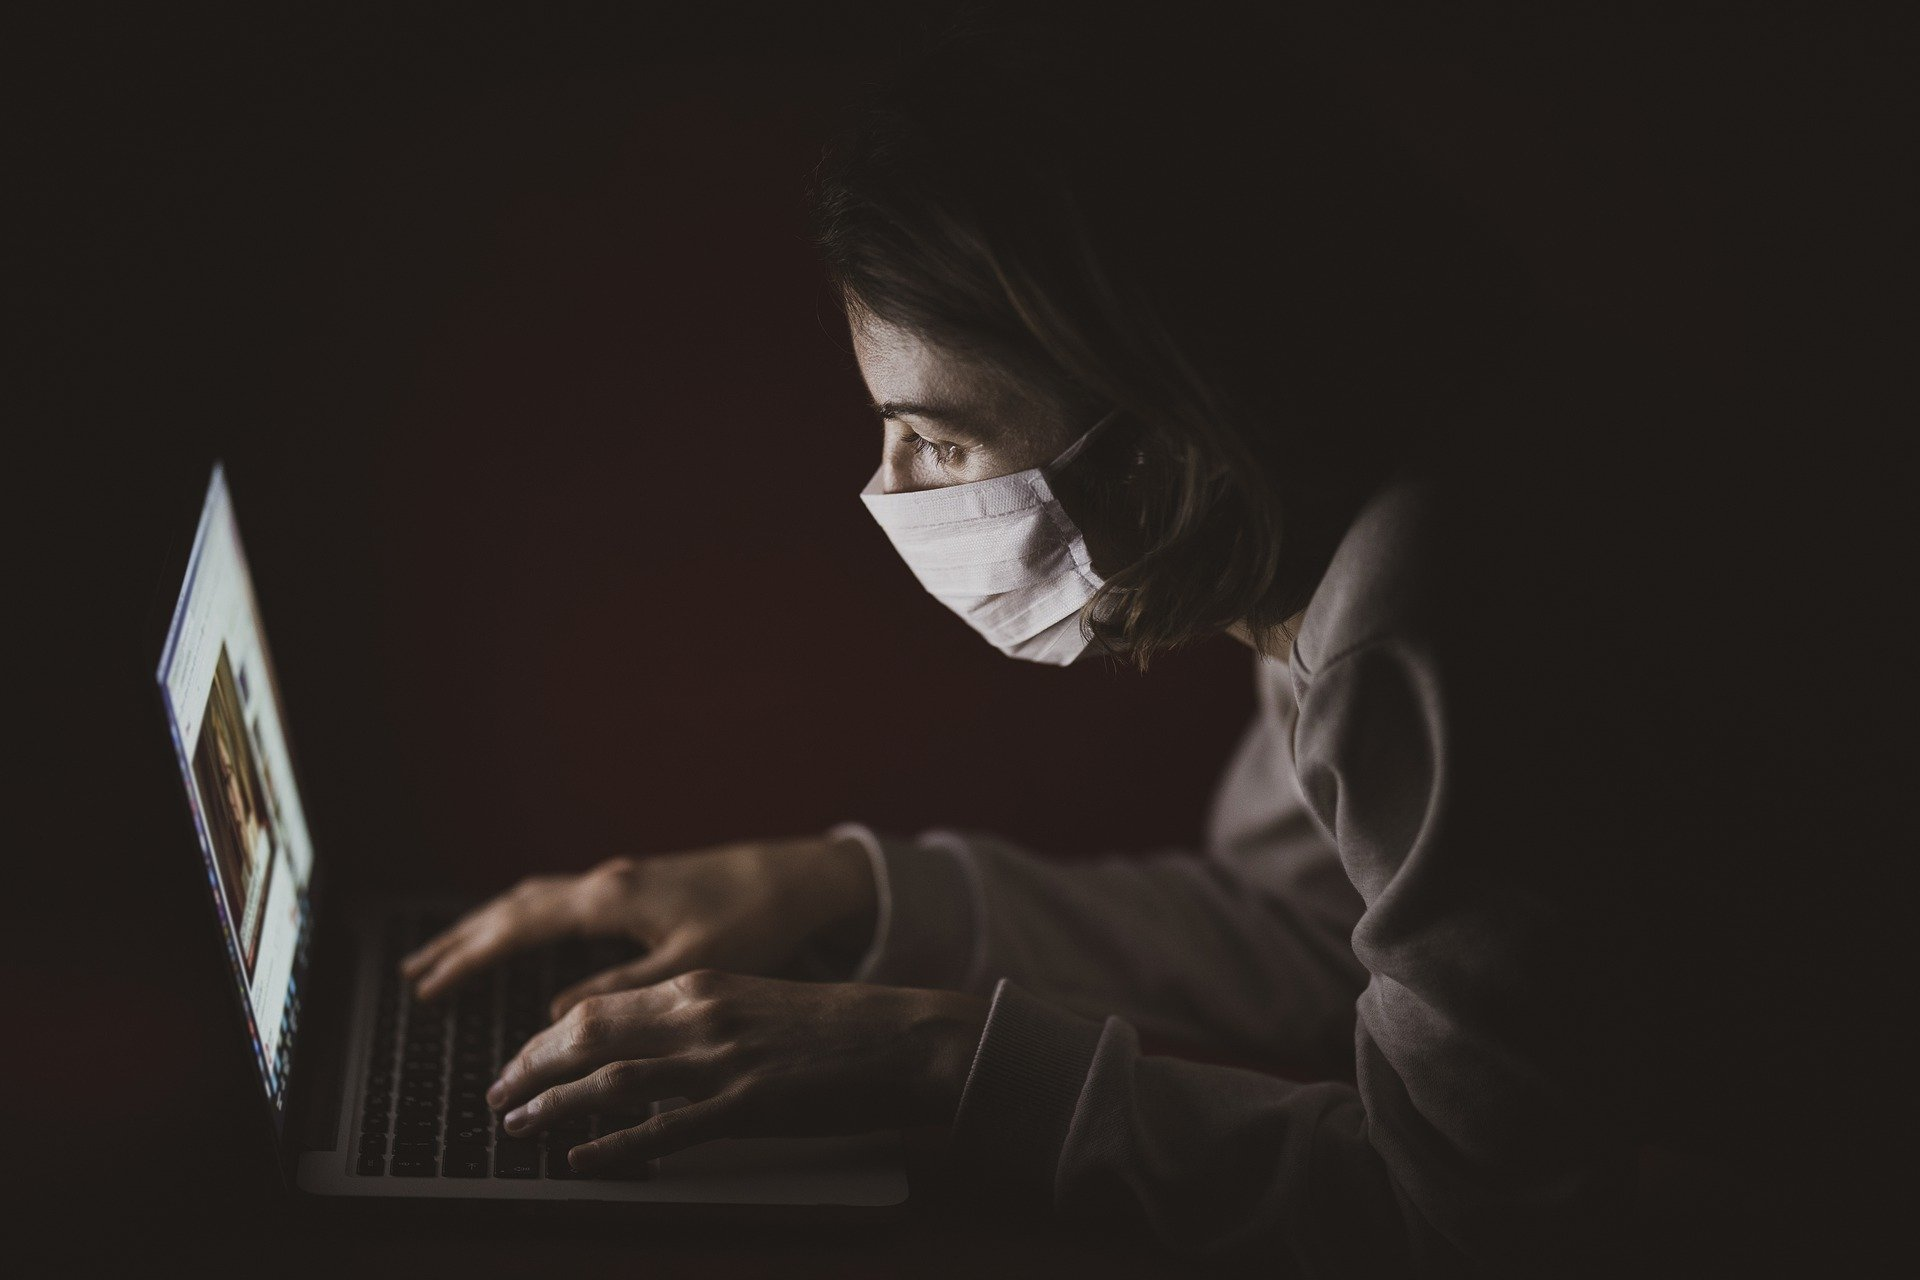 Person-on-laptop-with-mask-on.jpg